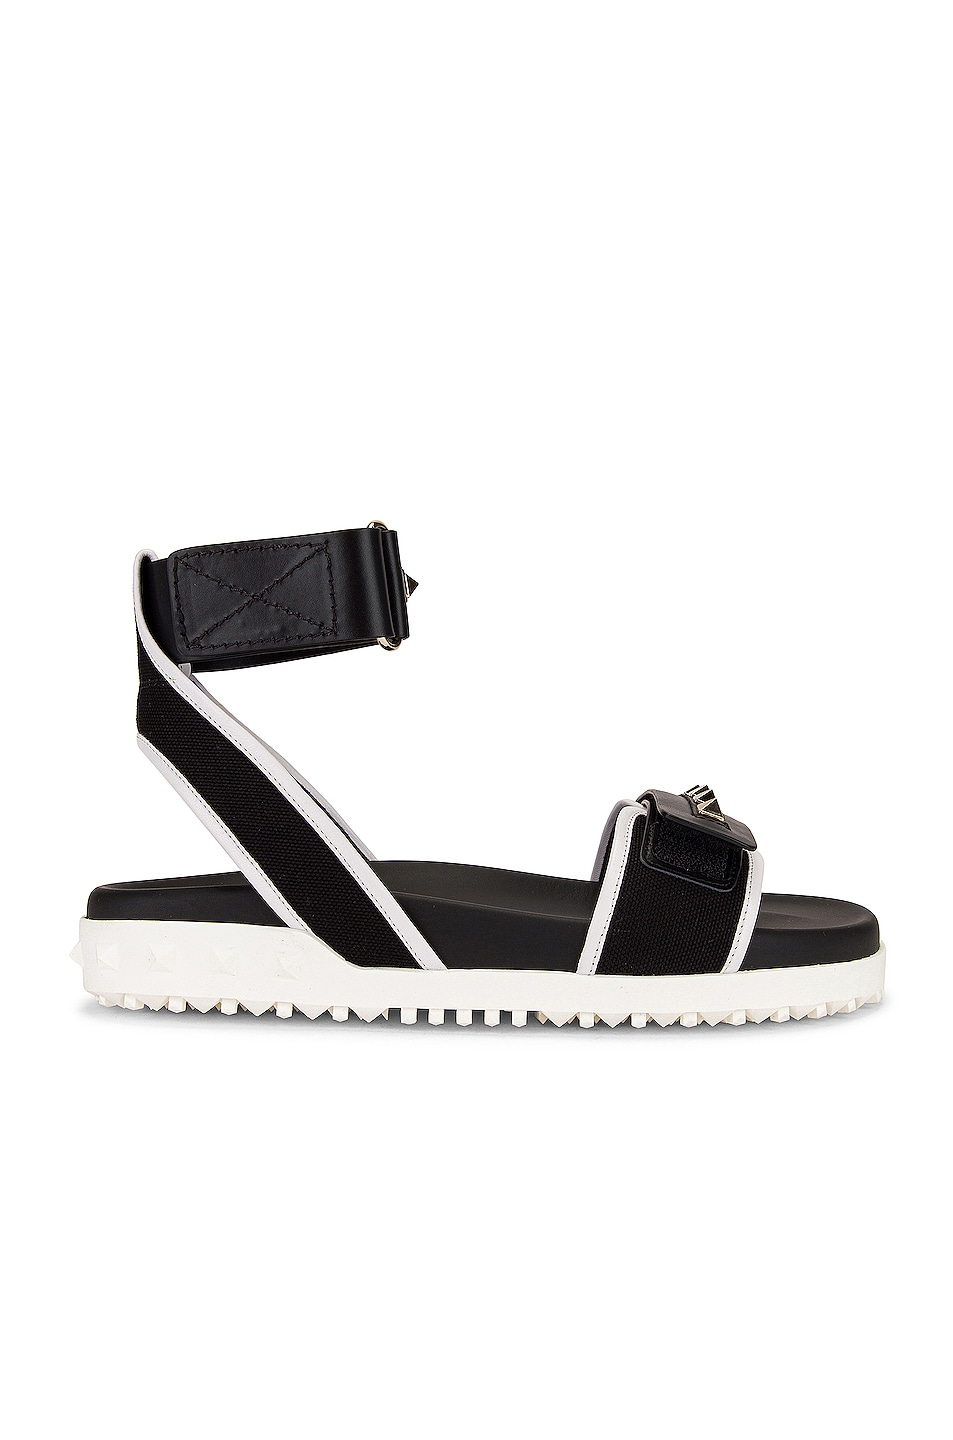 Image 1 of Valentino Rockstud Rubber Sandals in Black & Bianco Ottico